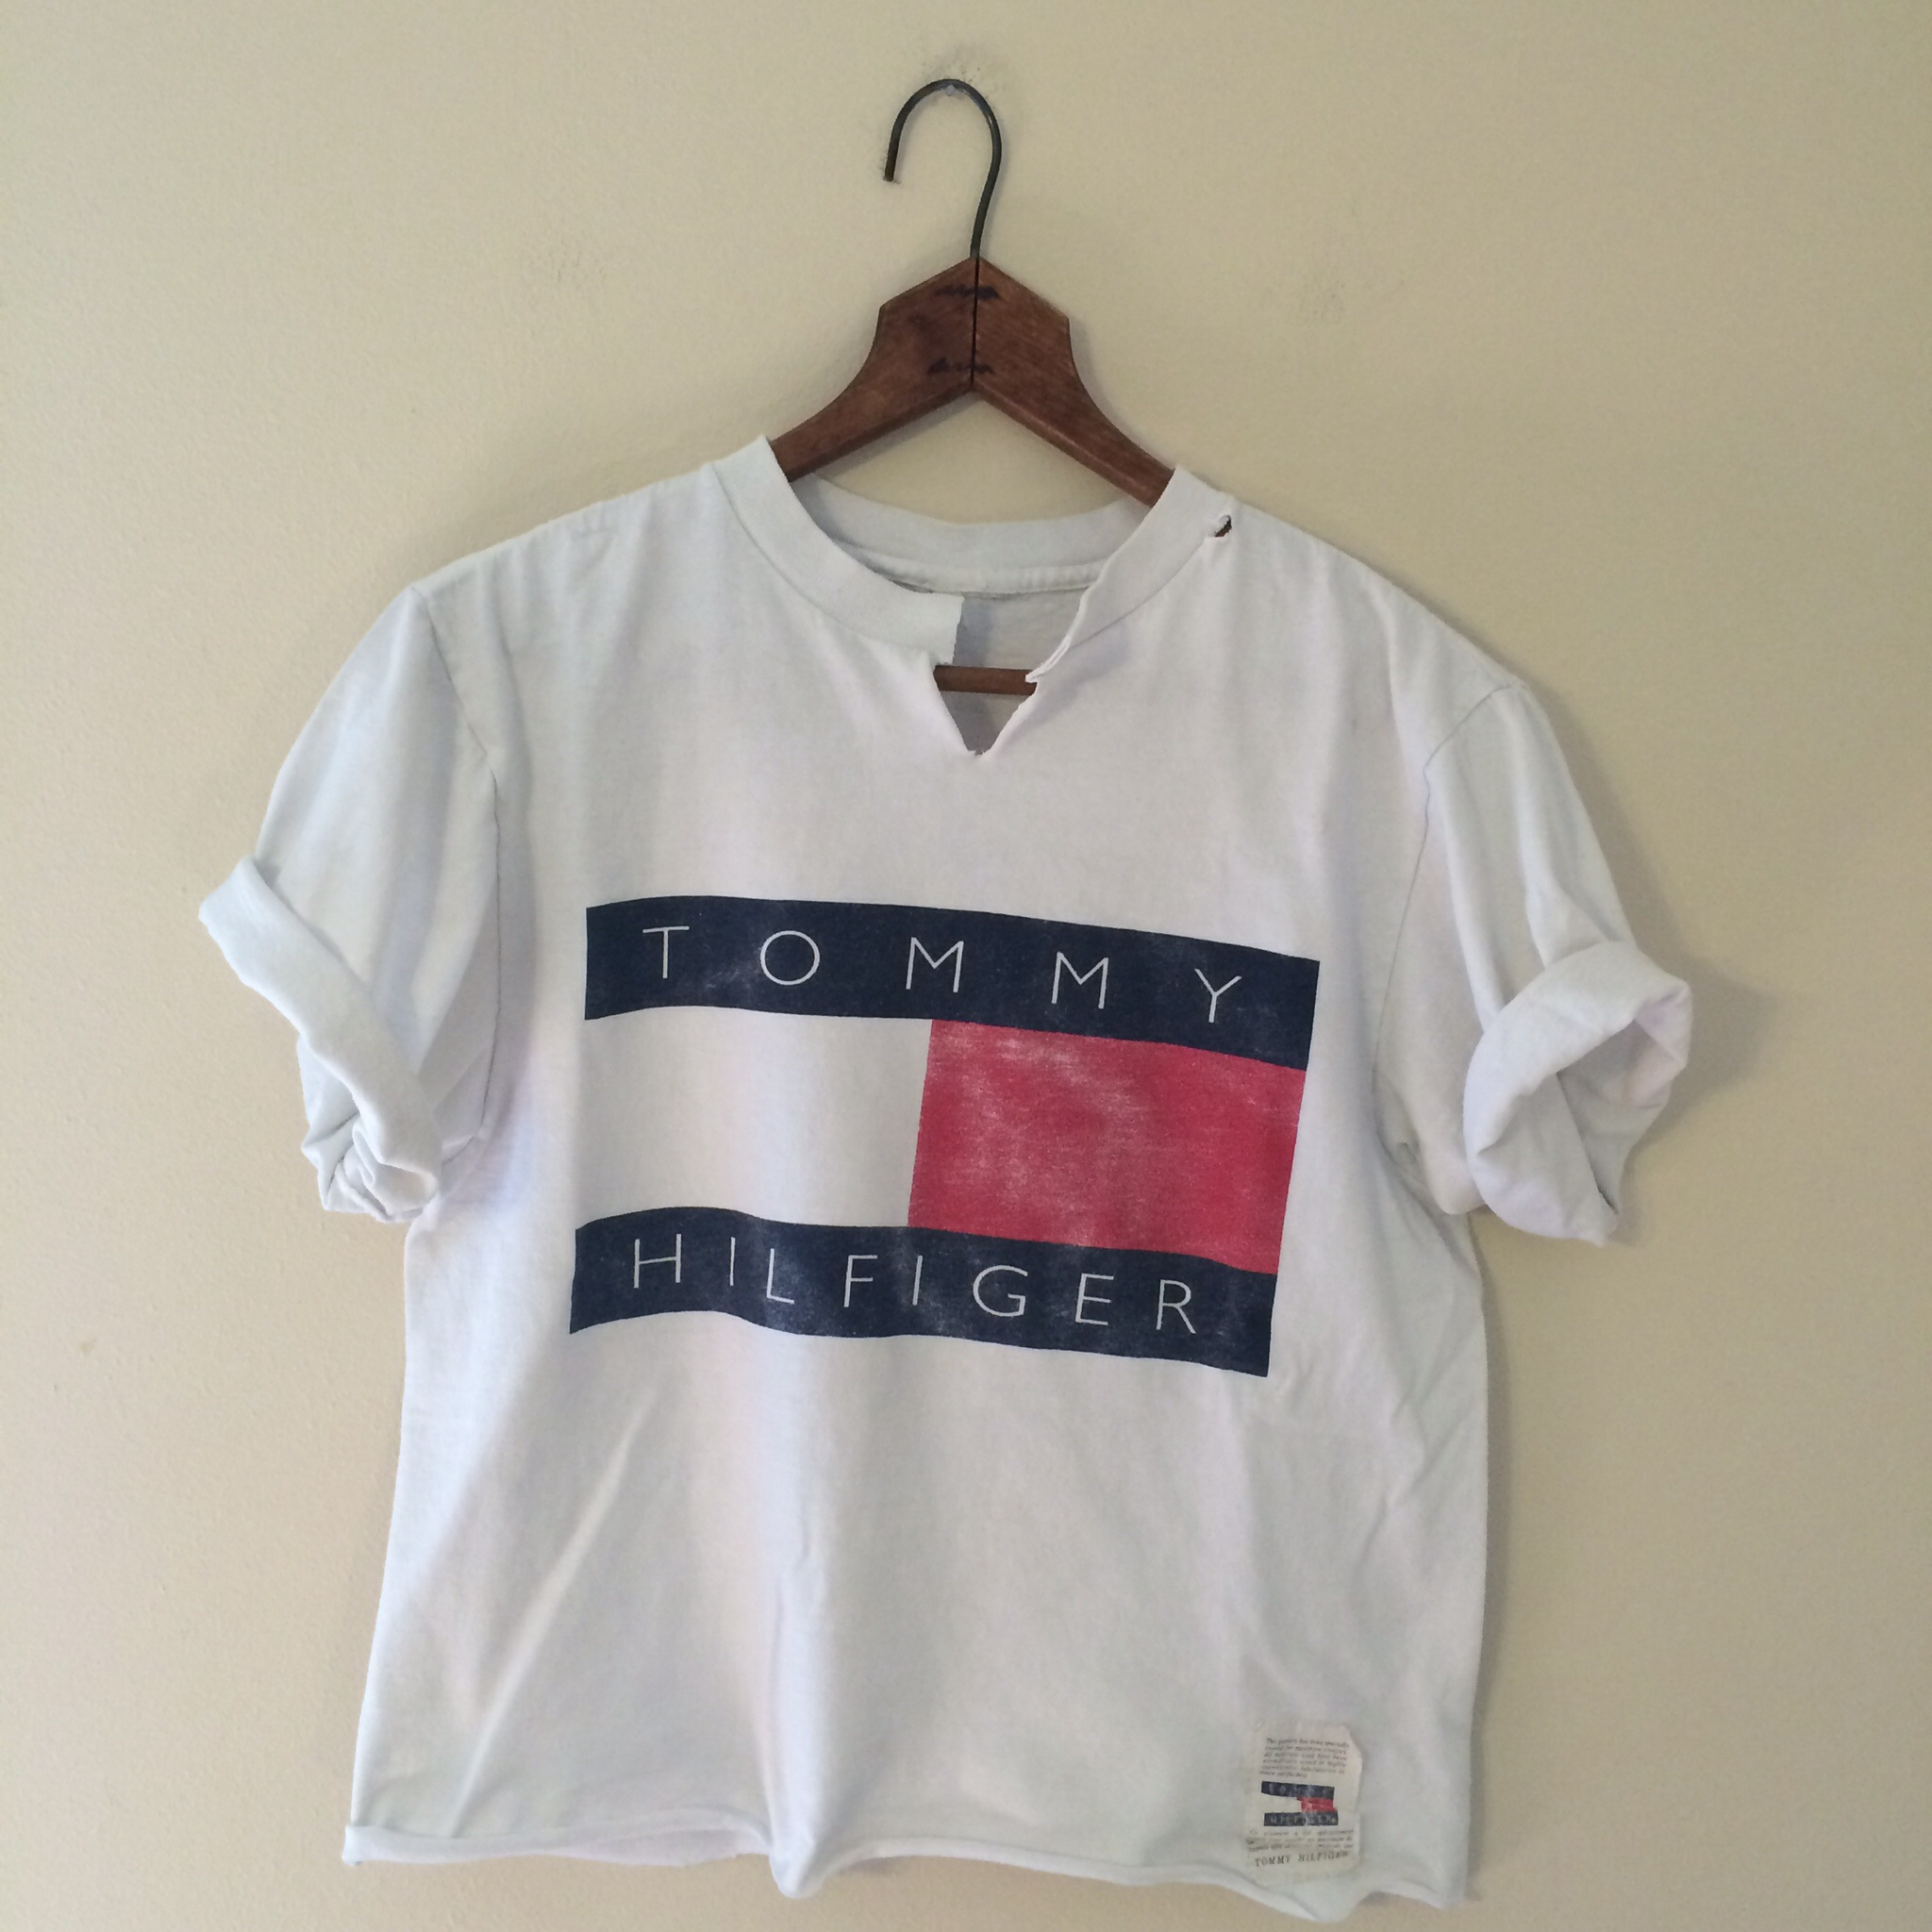 sold out vintage distressed tommy logo crop top on storenvy. Black Bedroom Furniture Sets. Home Design Ideas